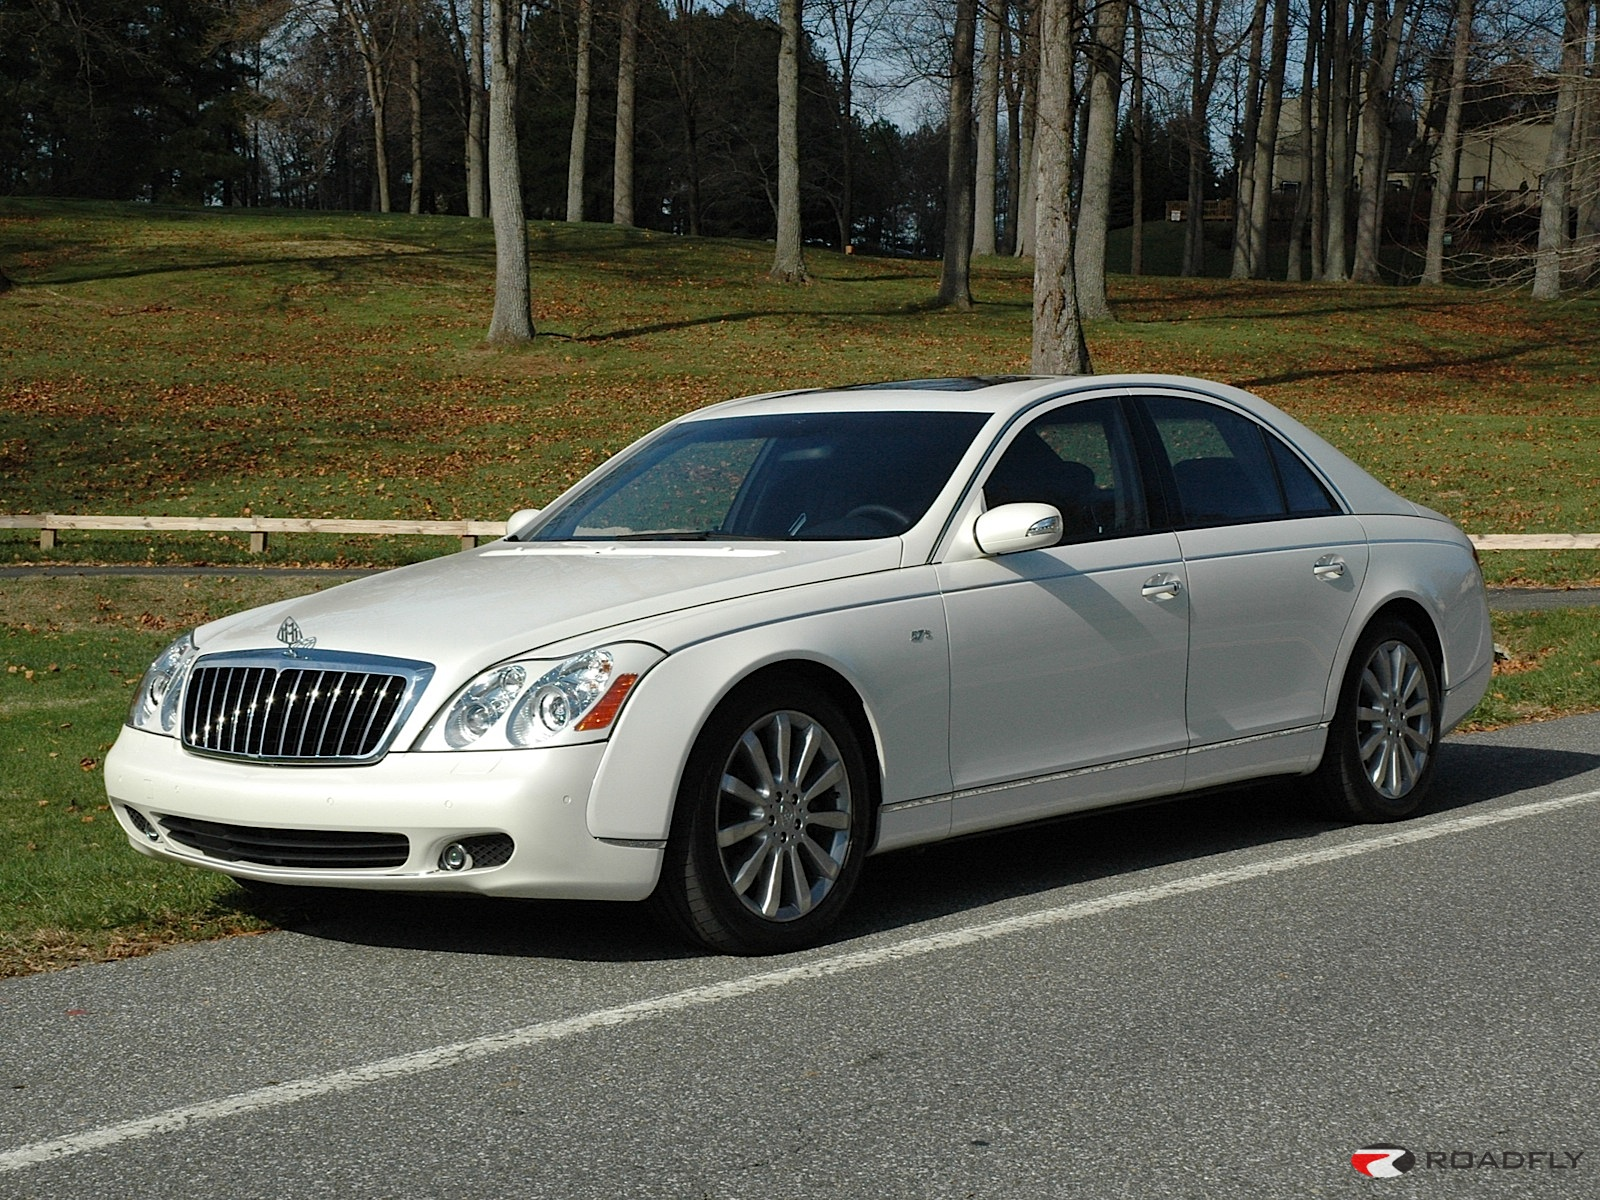 Maybach 57 Drive - BMW Cars Prices, Wallpaper, Features